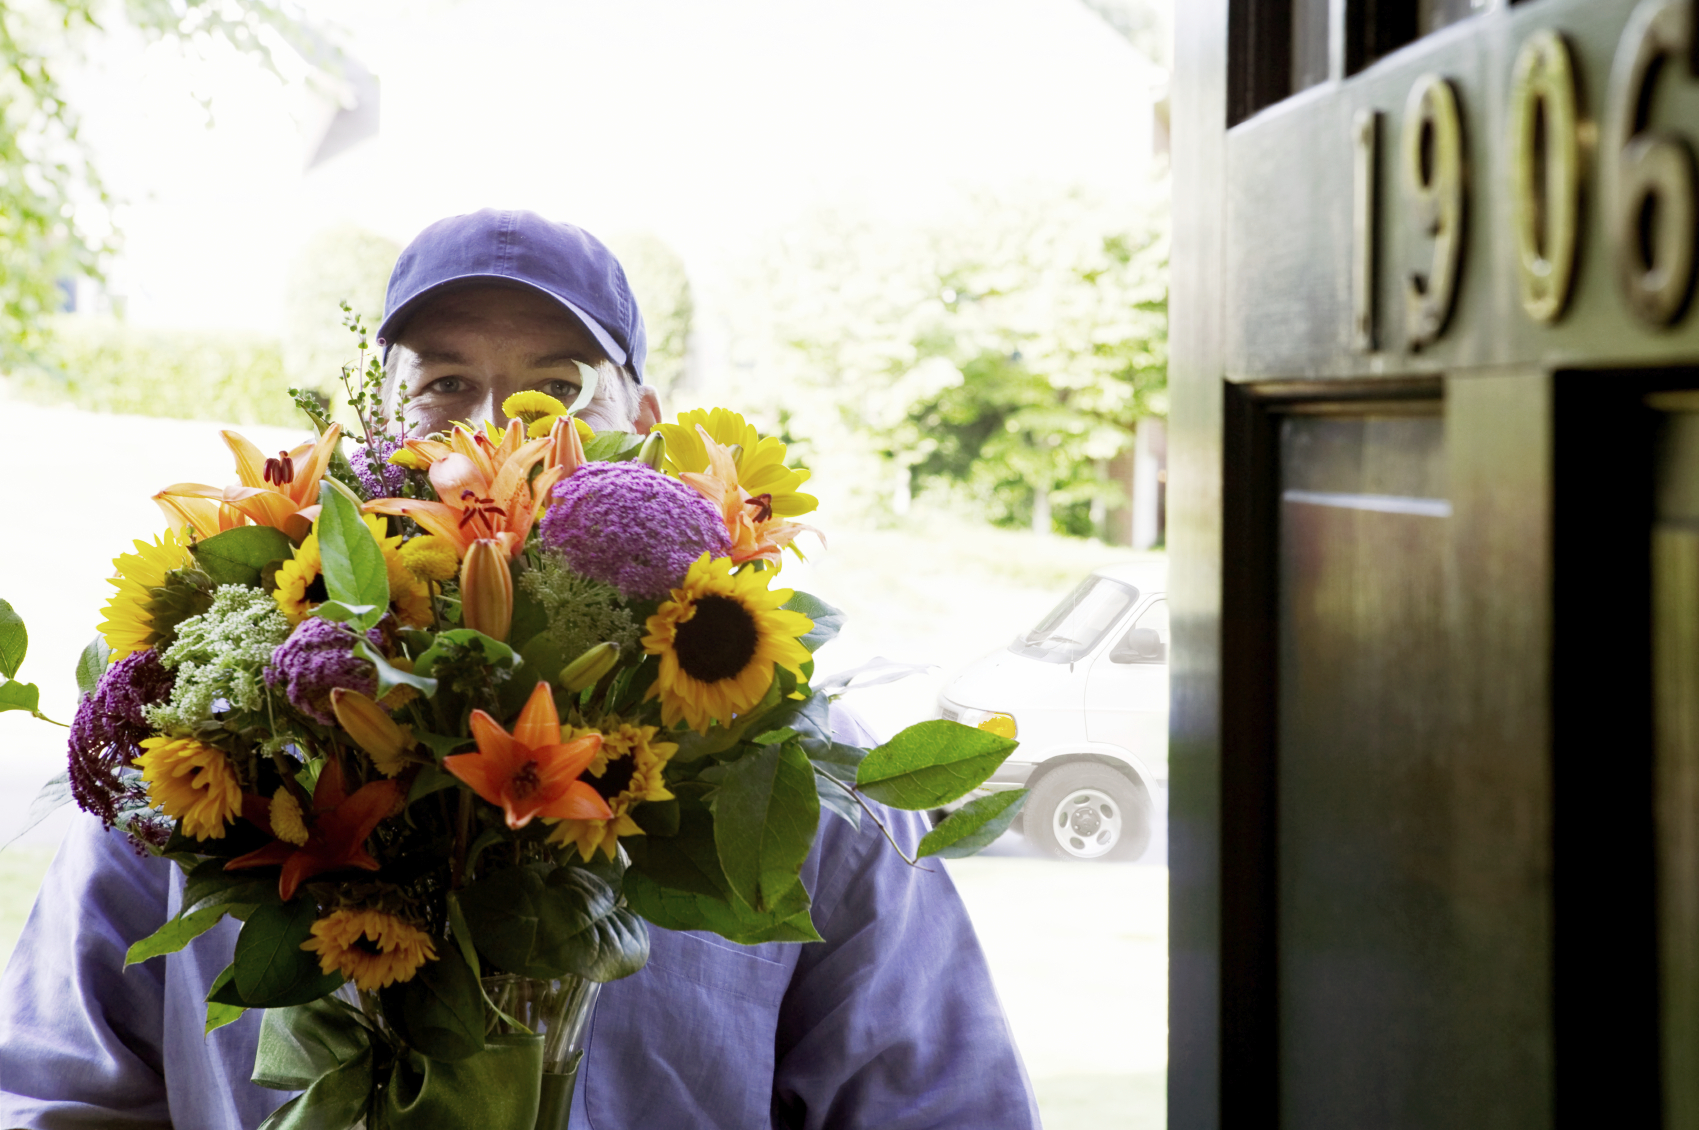 A courier delivering flowers.